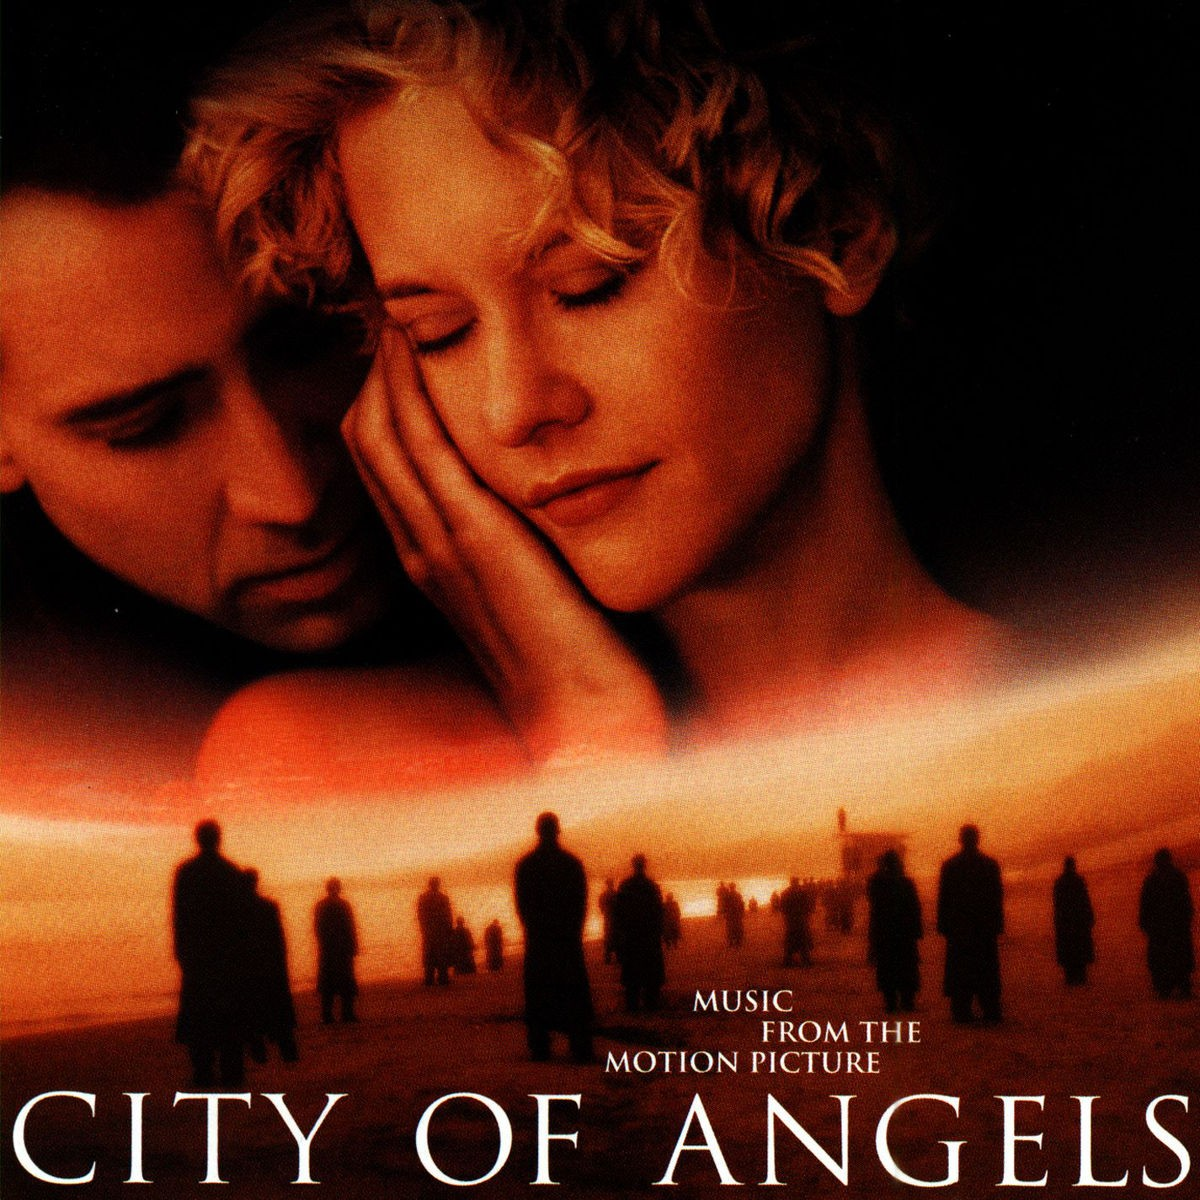 City of Angels (Music from the Motion Picture) CD - WBCD 1890